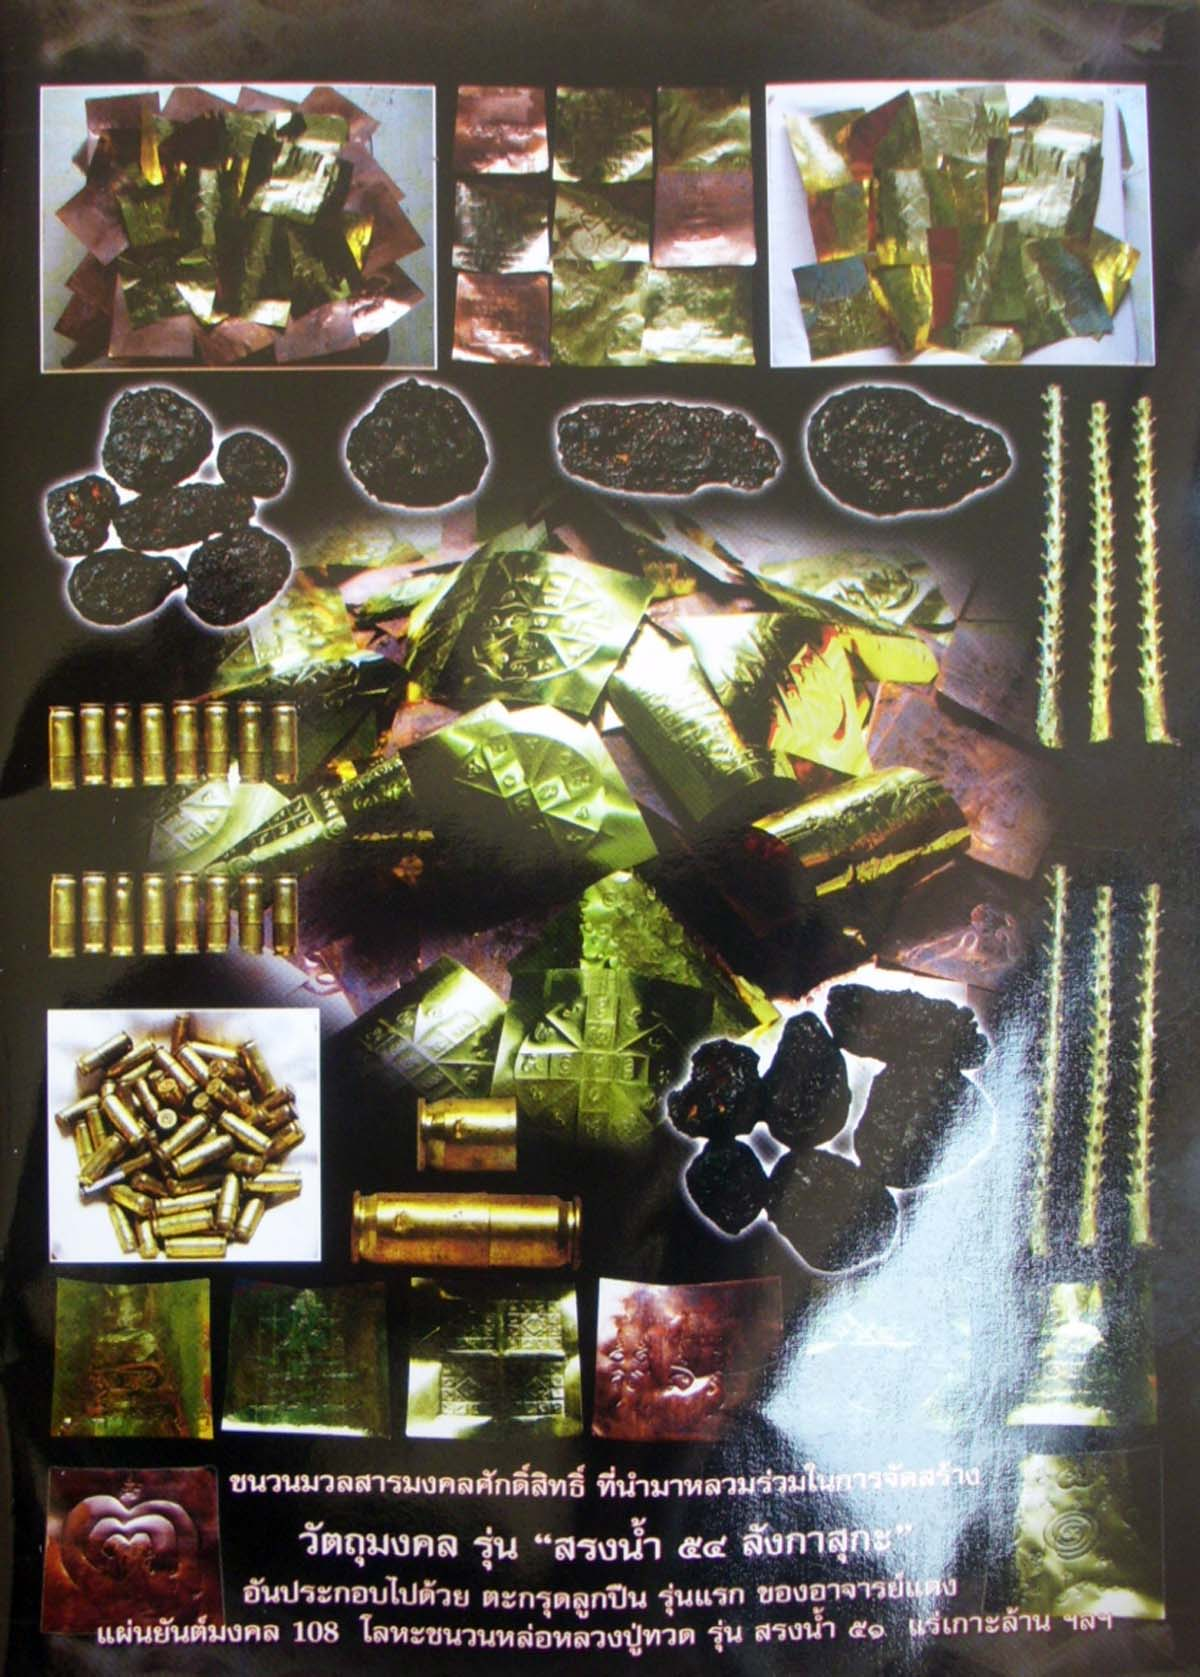 Luang Por Tuad - amulet ingredients used in the smelting process